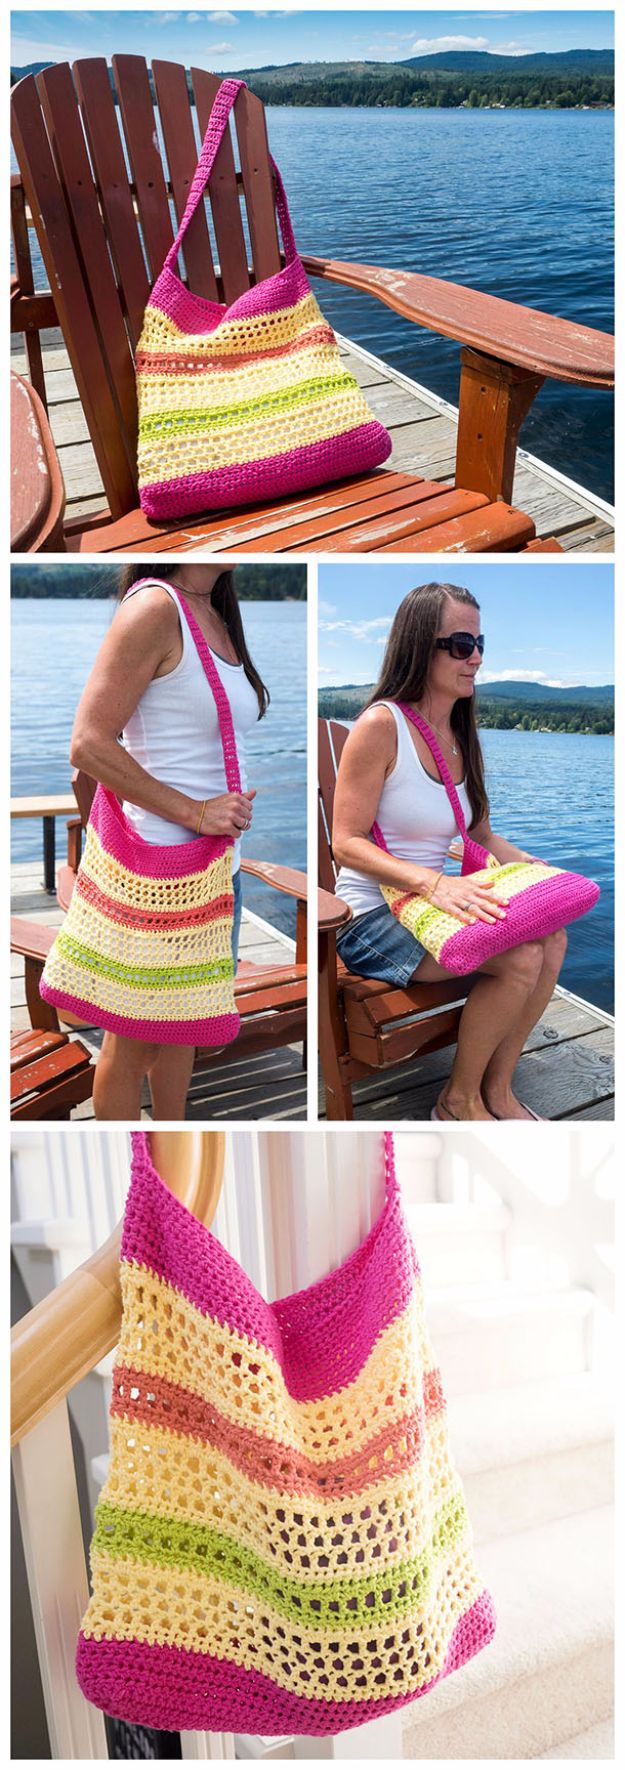 DIY Bags for Summer - Crochet Beach Tote Bag - Easy Ideas to Make for Beach and Pool - Quick Projects for a Bag on A Budget - Cute No Sew Idea, Quick Sewing Patterns - Paint and Crafts for Making Creative Beach Bags - Fun Tutorials for Kids, Teens, Teenagers, Girls and Adults